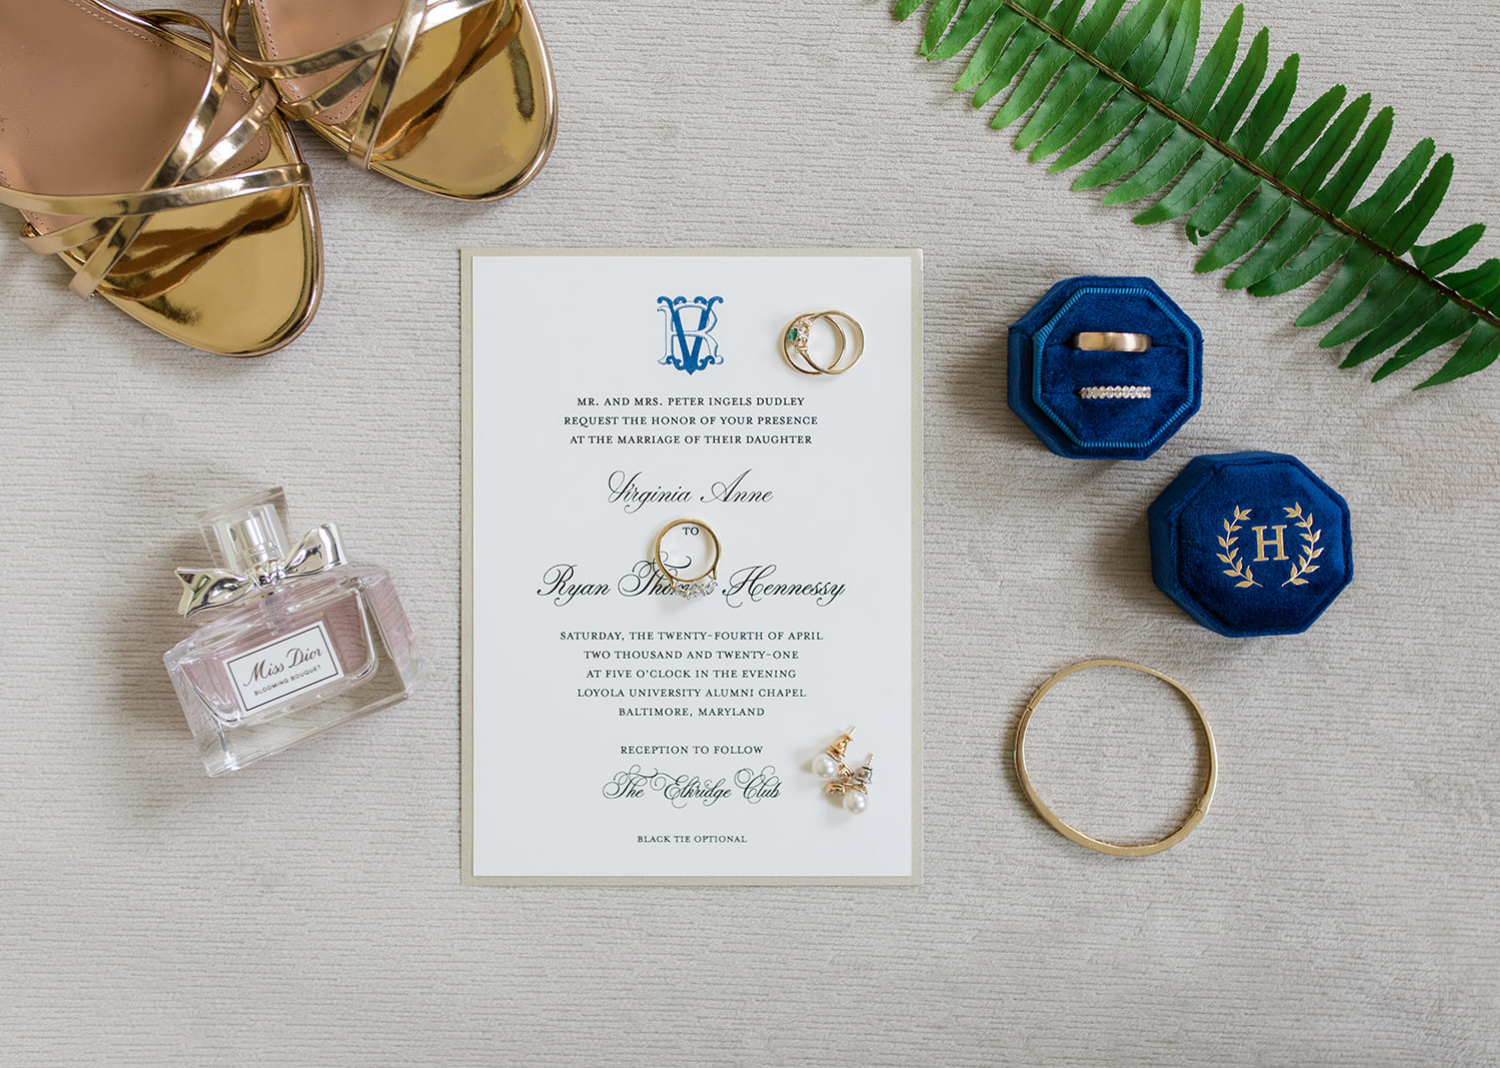 wedding day details and wedding rings on a flatlay